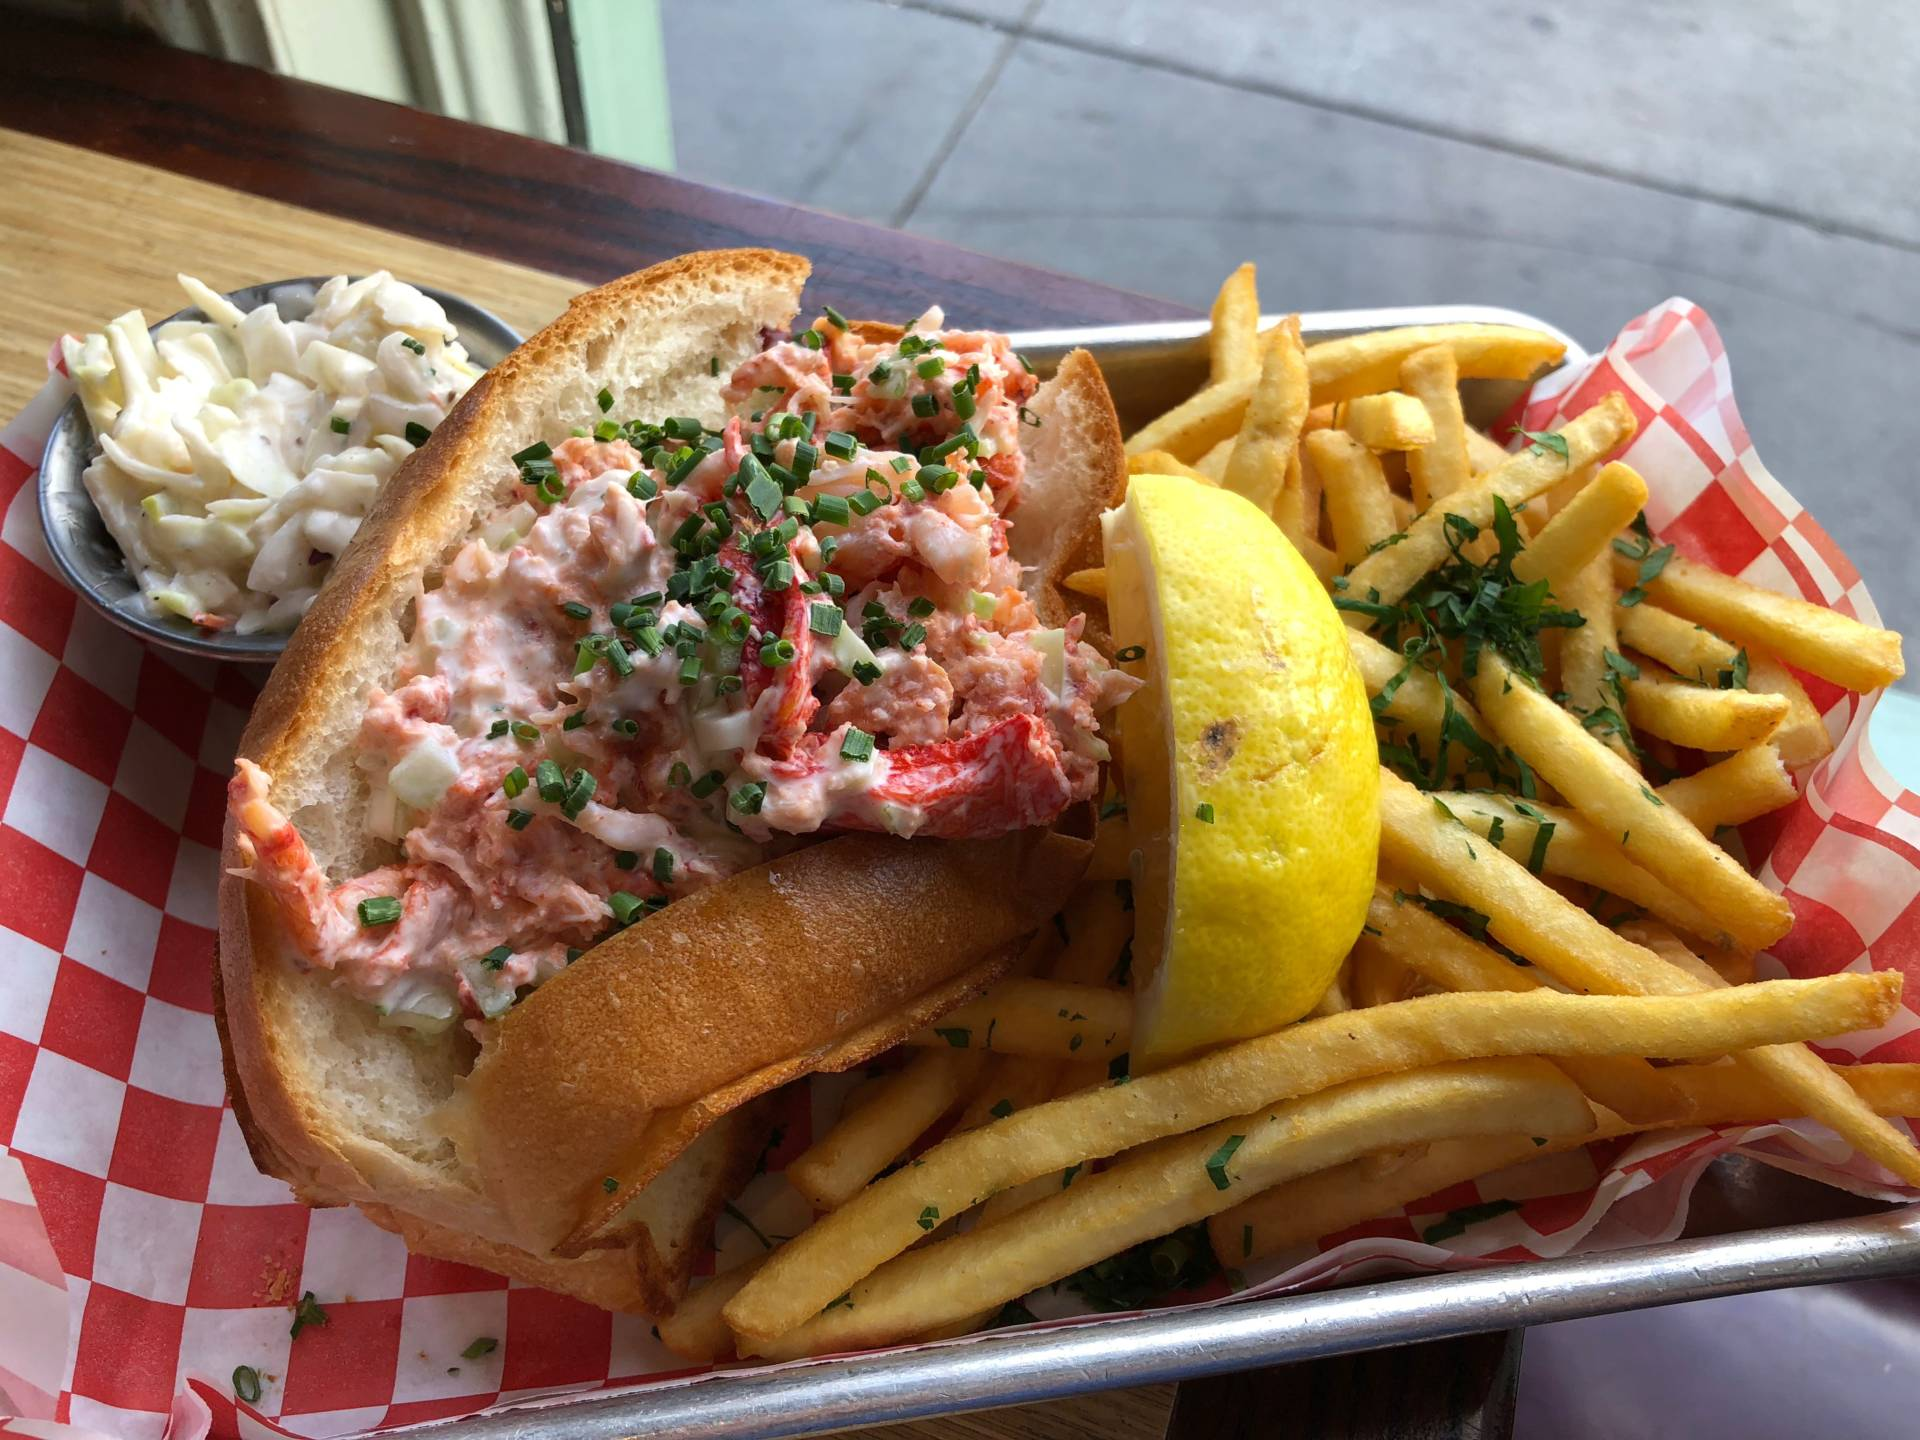 Mayo-based lobster roll at Woodhouse Fish Co.